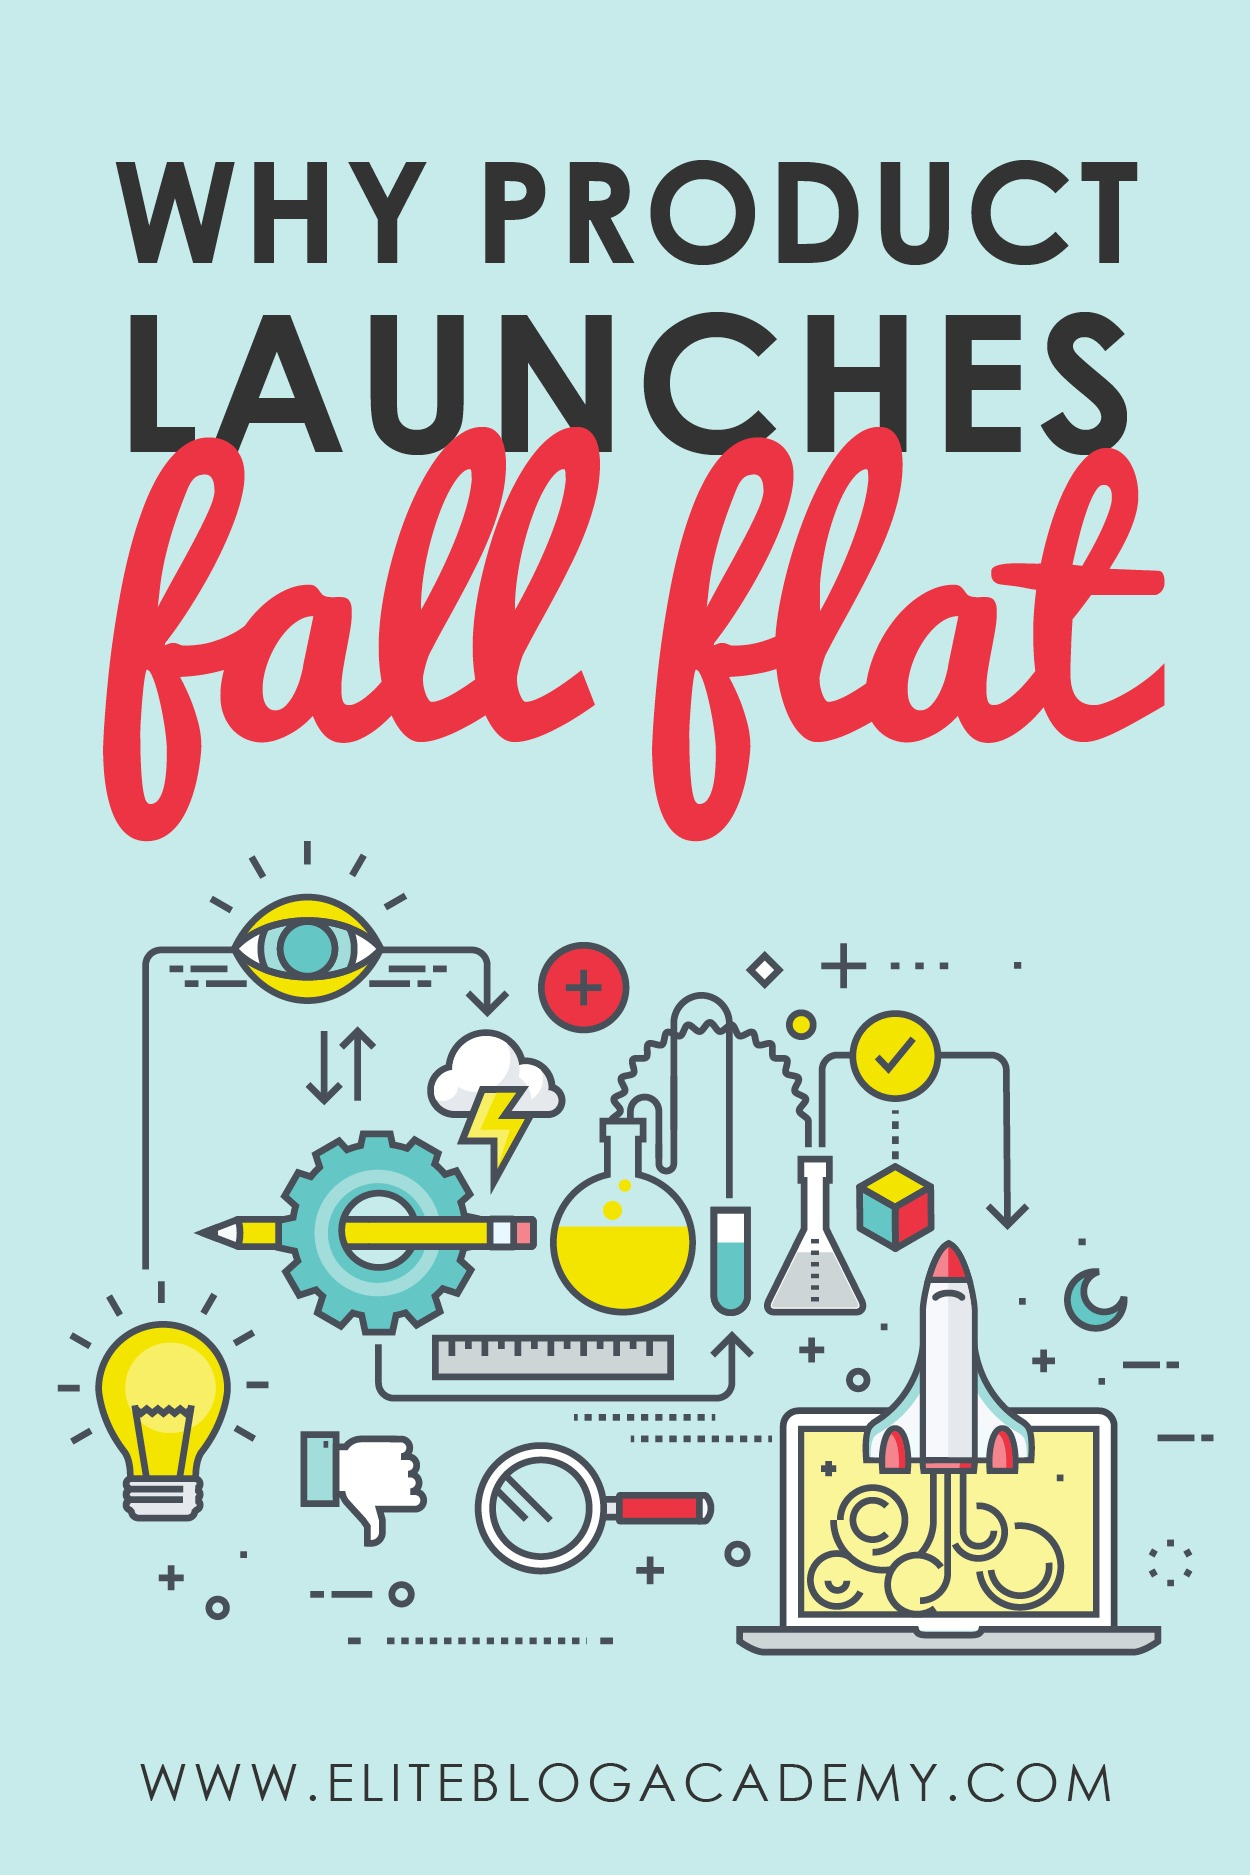 Have you thought about launching a product but afraid that it will totally bomb? The truth is that some of the most valuable lessons we'll get in our businesses come directly from our failures. Don't miss these 6 biggest reasons that product launches flop — and how you can avoid them! #productlaunching #internetmarketing #internetselling #blogging #eliteblogacademy